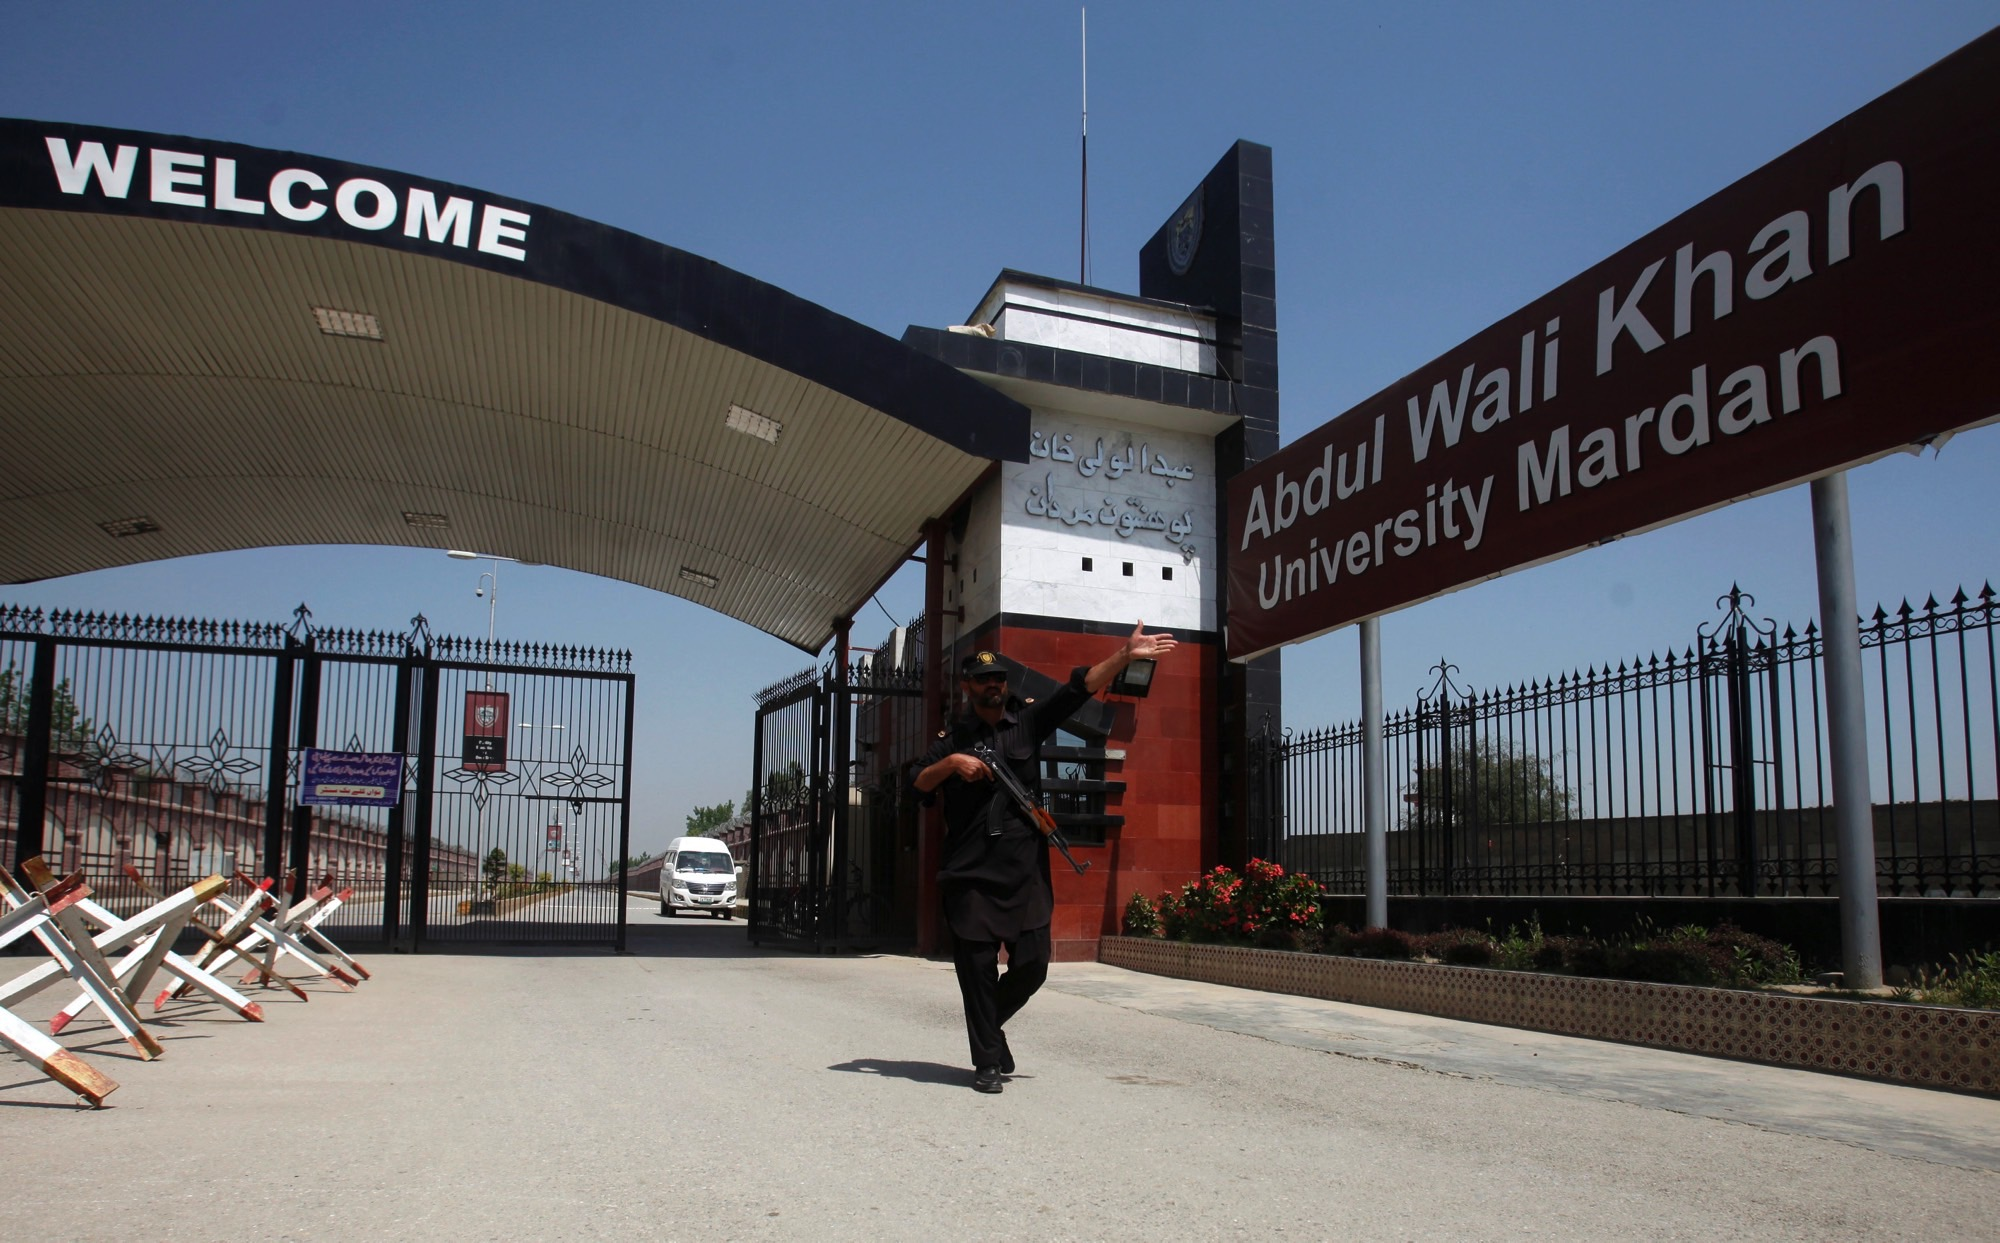 A policeman gestures as he stands guard at the entry of Abdul Wali Khan University where Mashal Khan, accused of blasphemy, was killed by a mob, in Mardan, Pakistan April 14, 2017. Credit: Reuters/Fayaz Aziz